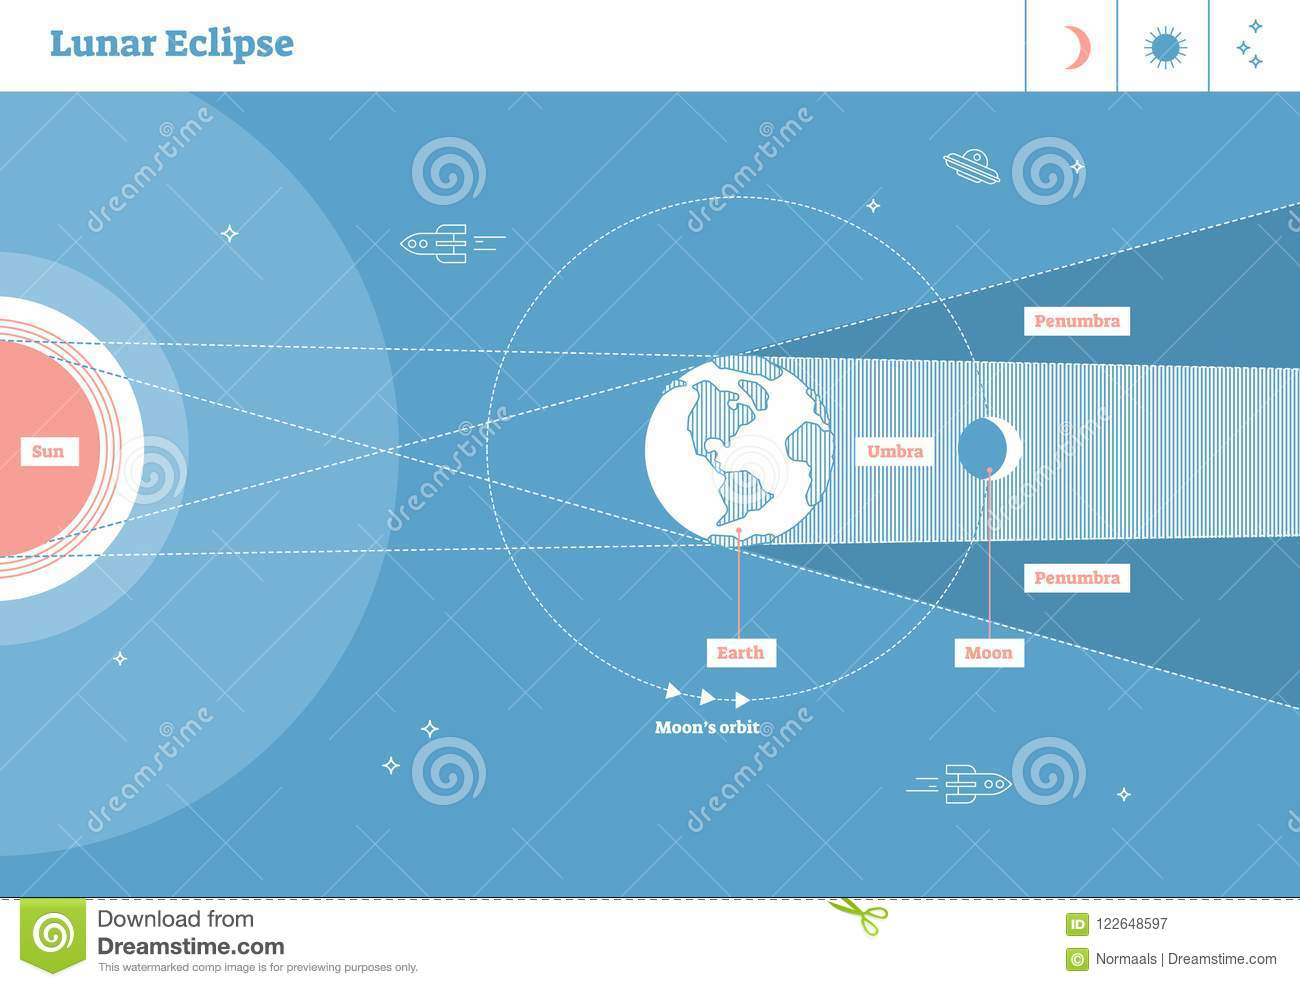 hight resolution of lunar eclipse vector illustration diagram scientific planetary cycle with sun earth and moon earth